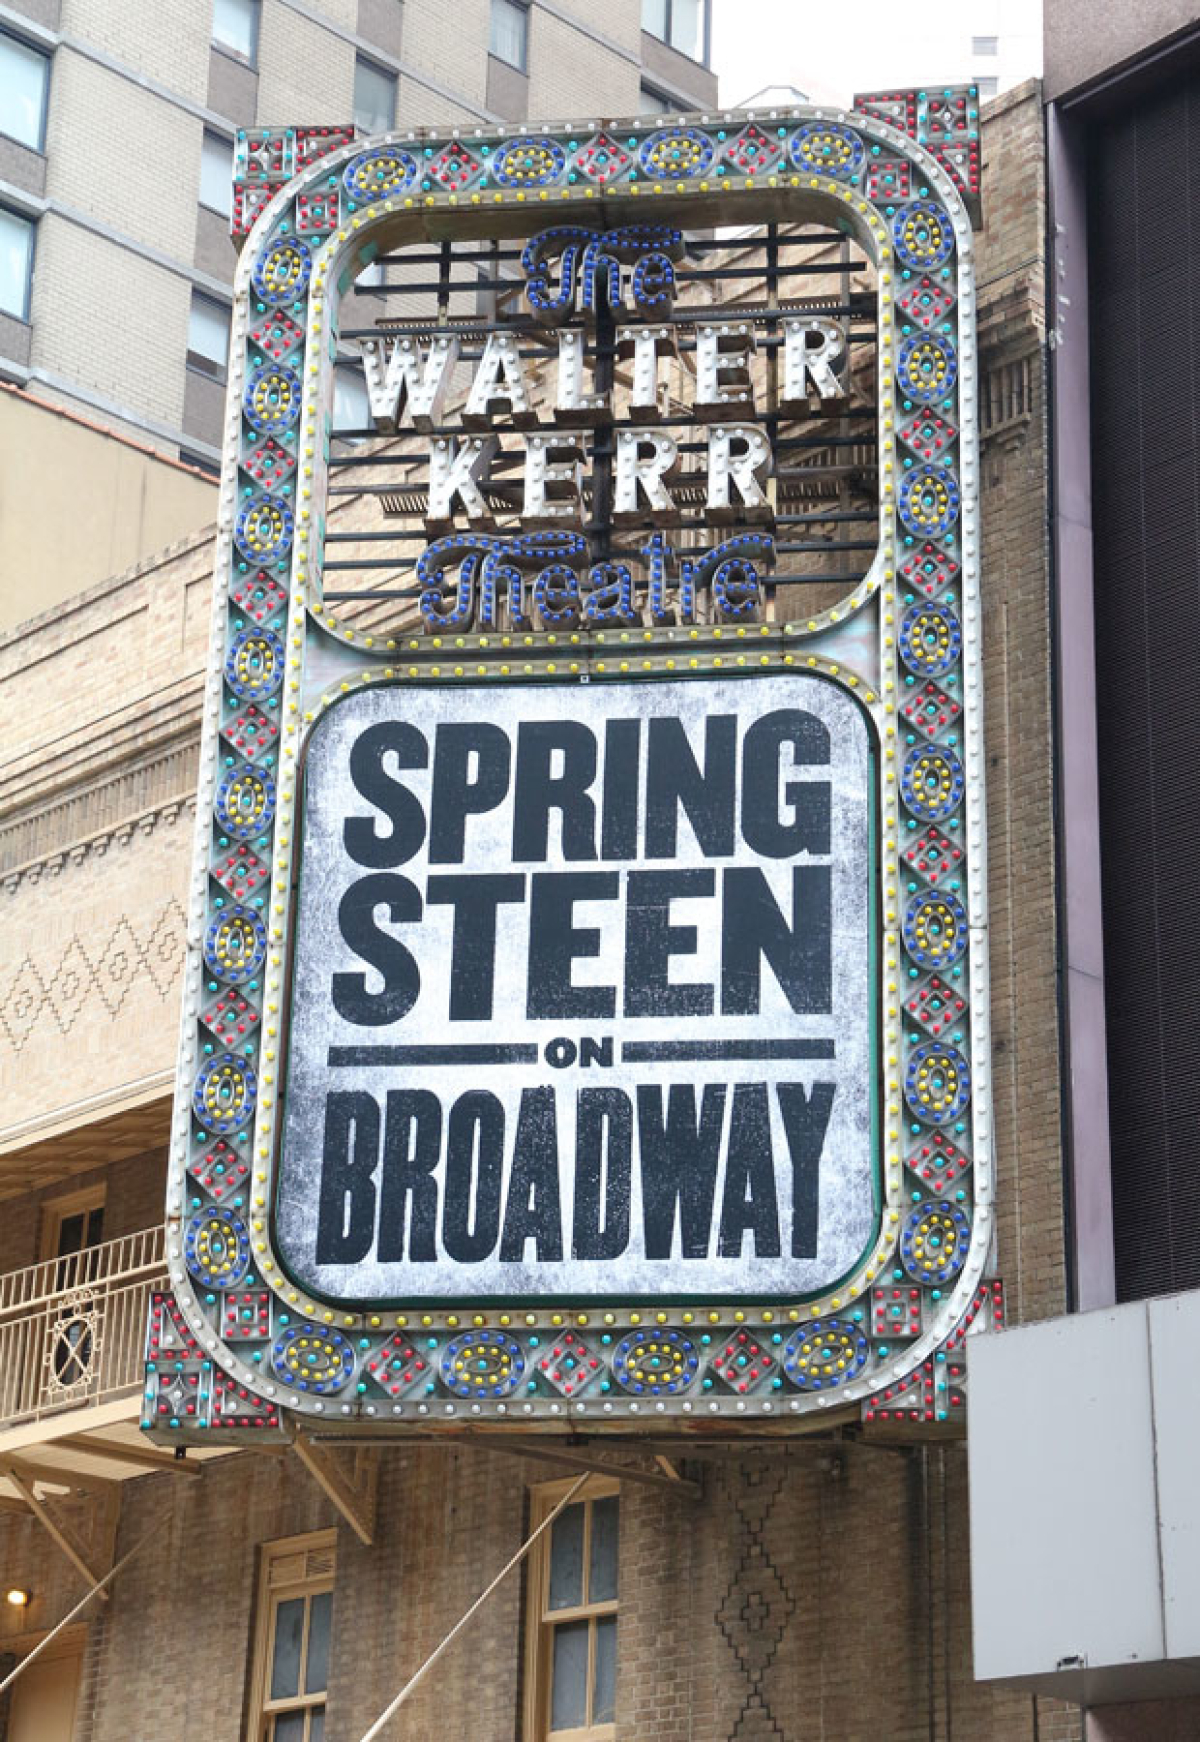 the marquee for springsteen on broadway at the walter kerr